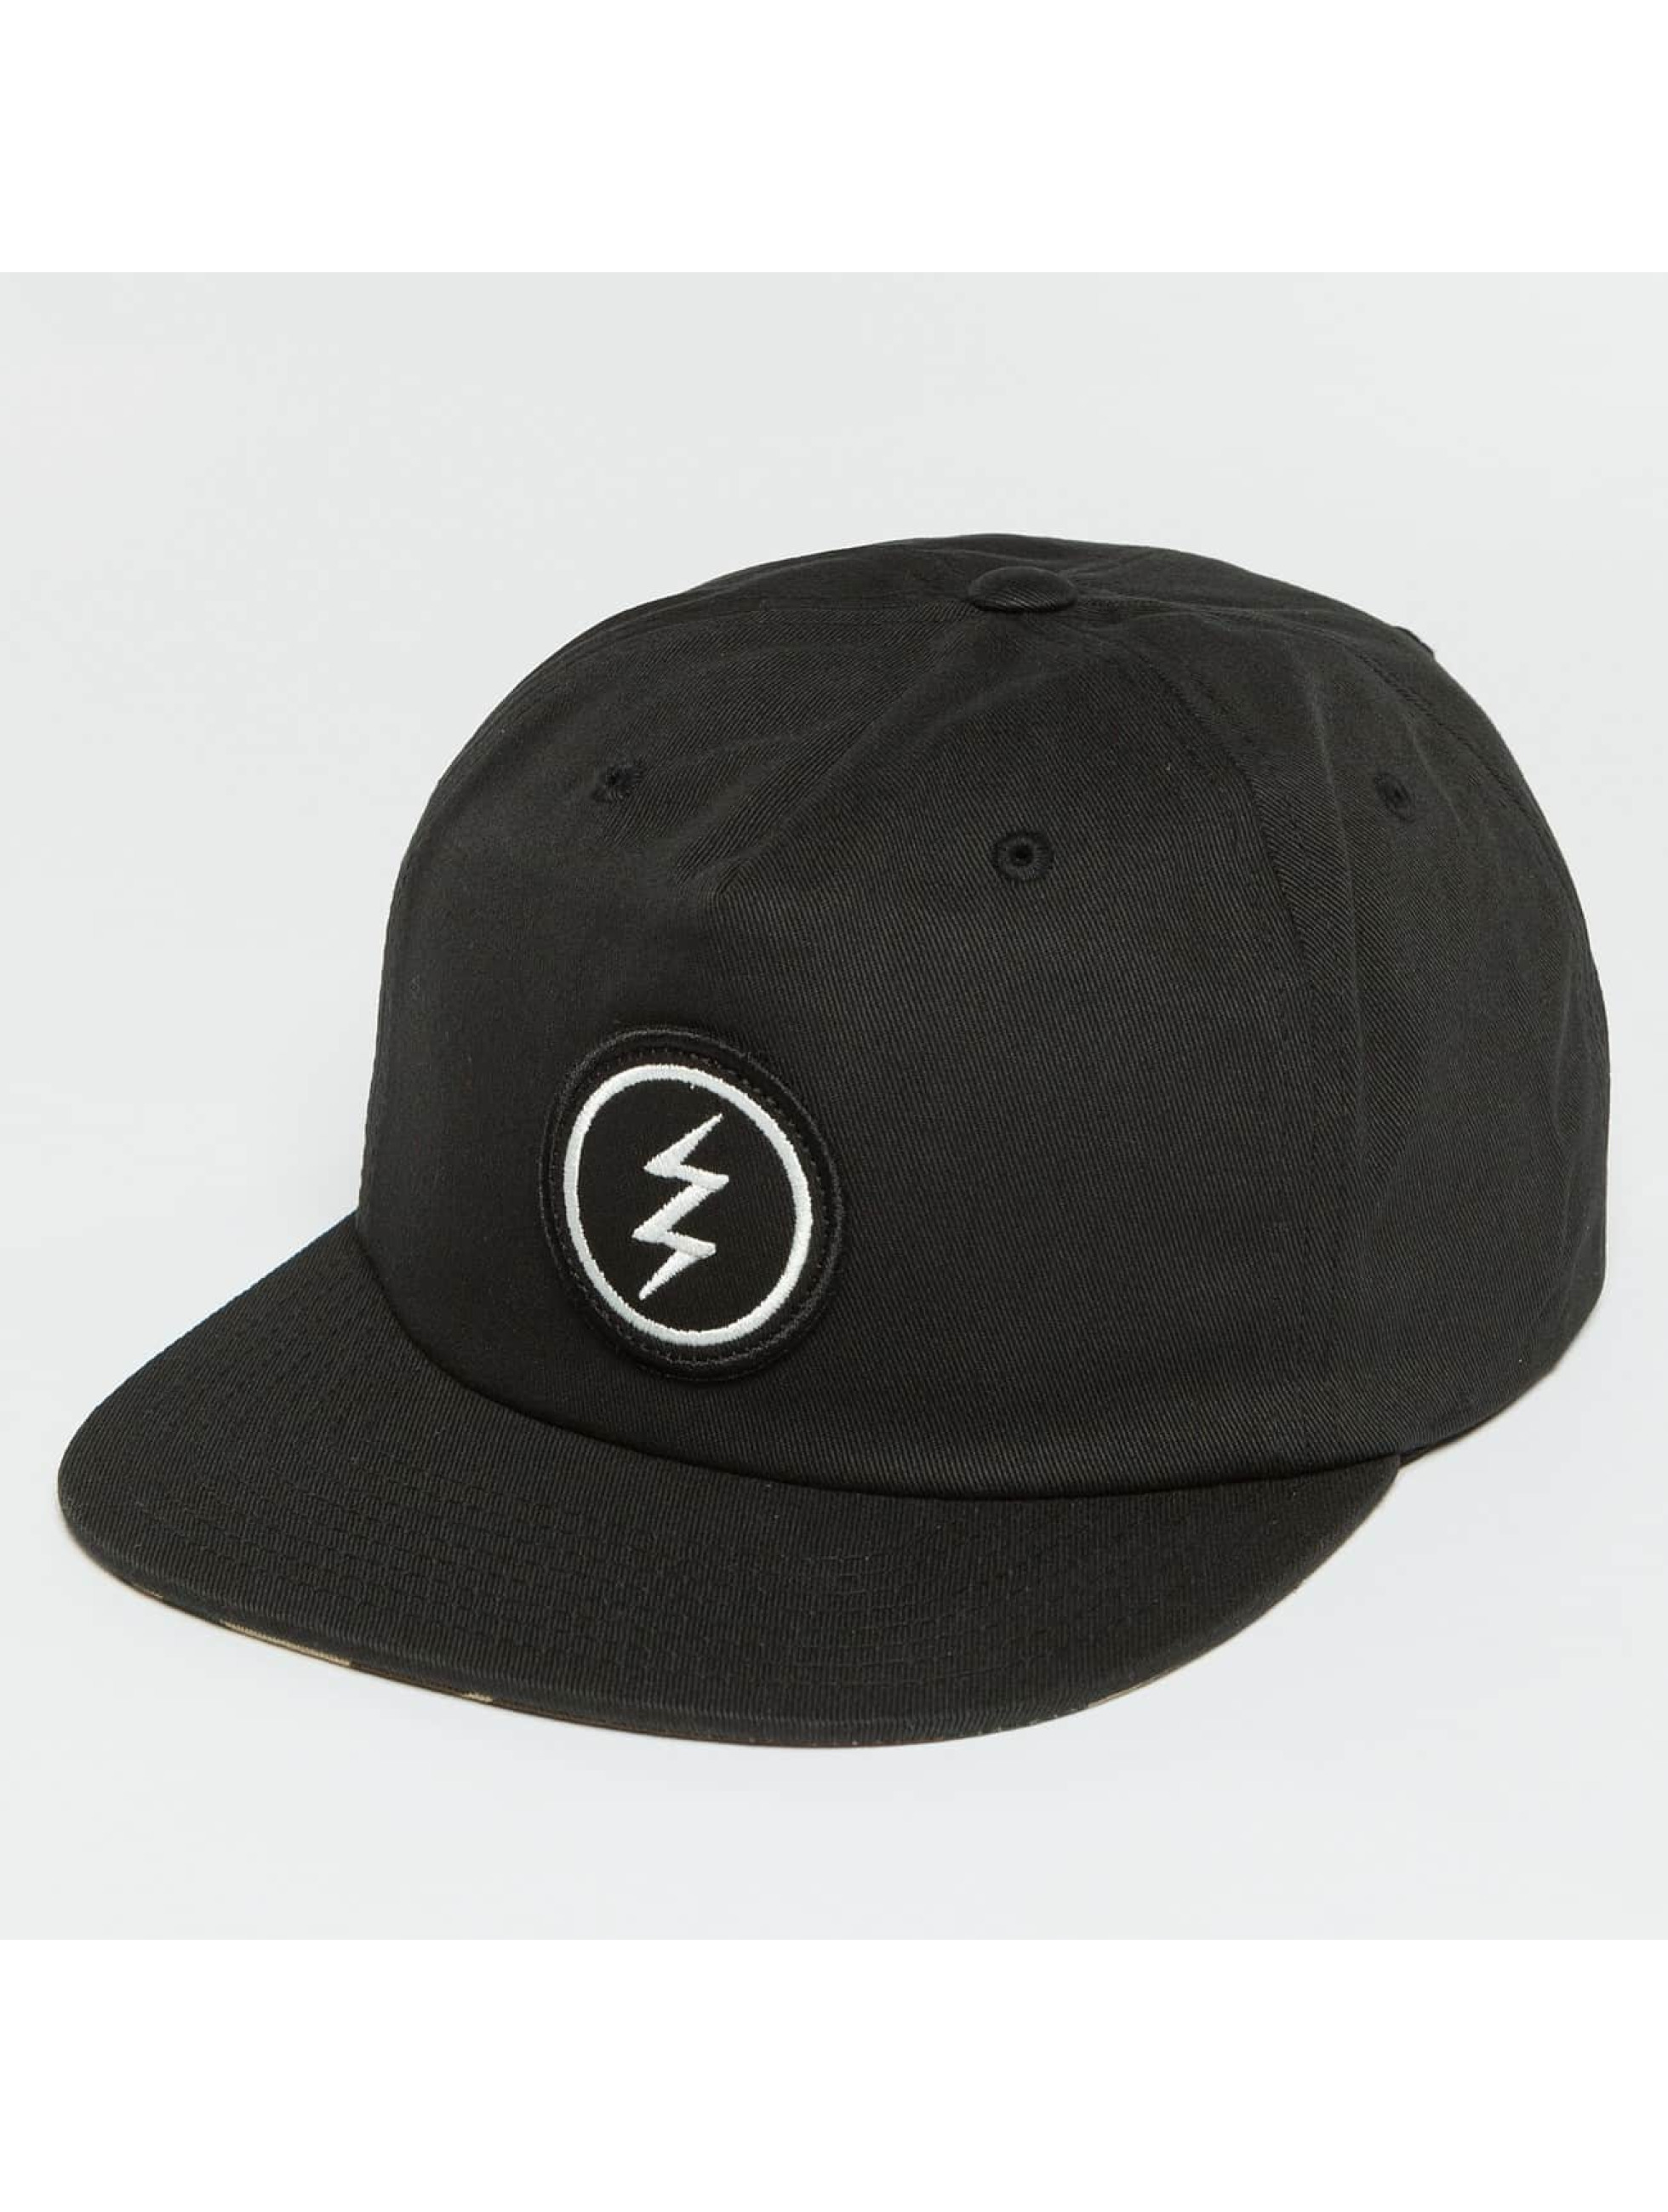 Electric Snapback Cap NEW UNIFORM nero